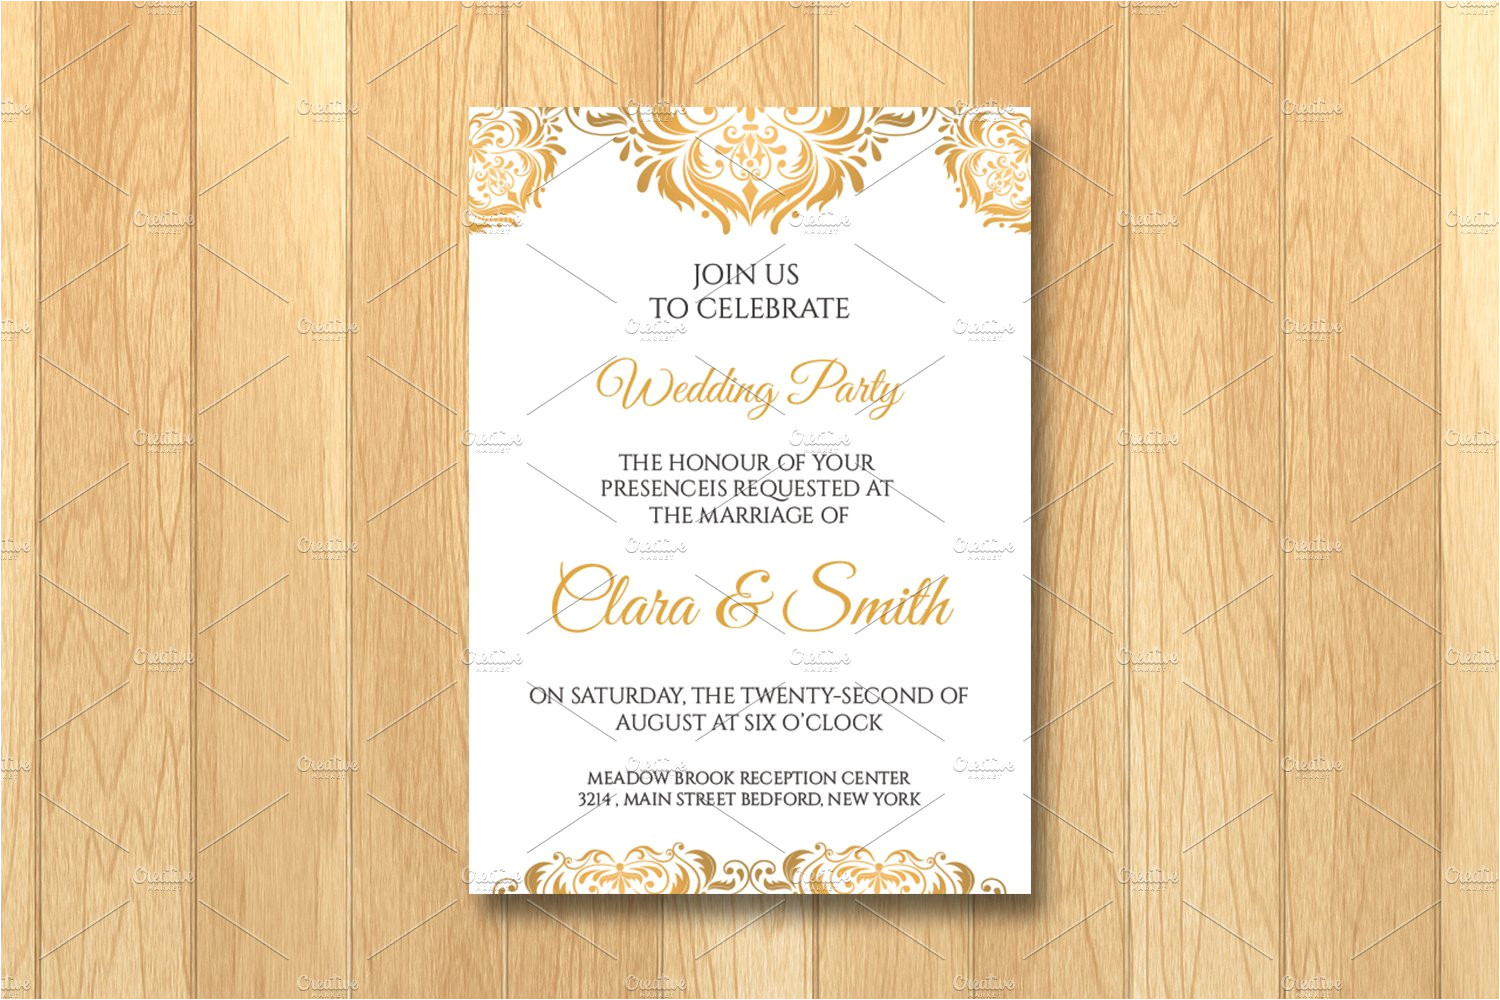 992977 wedding invitation card template